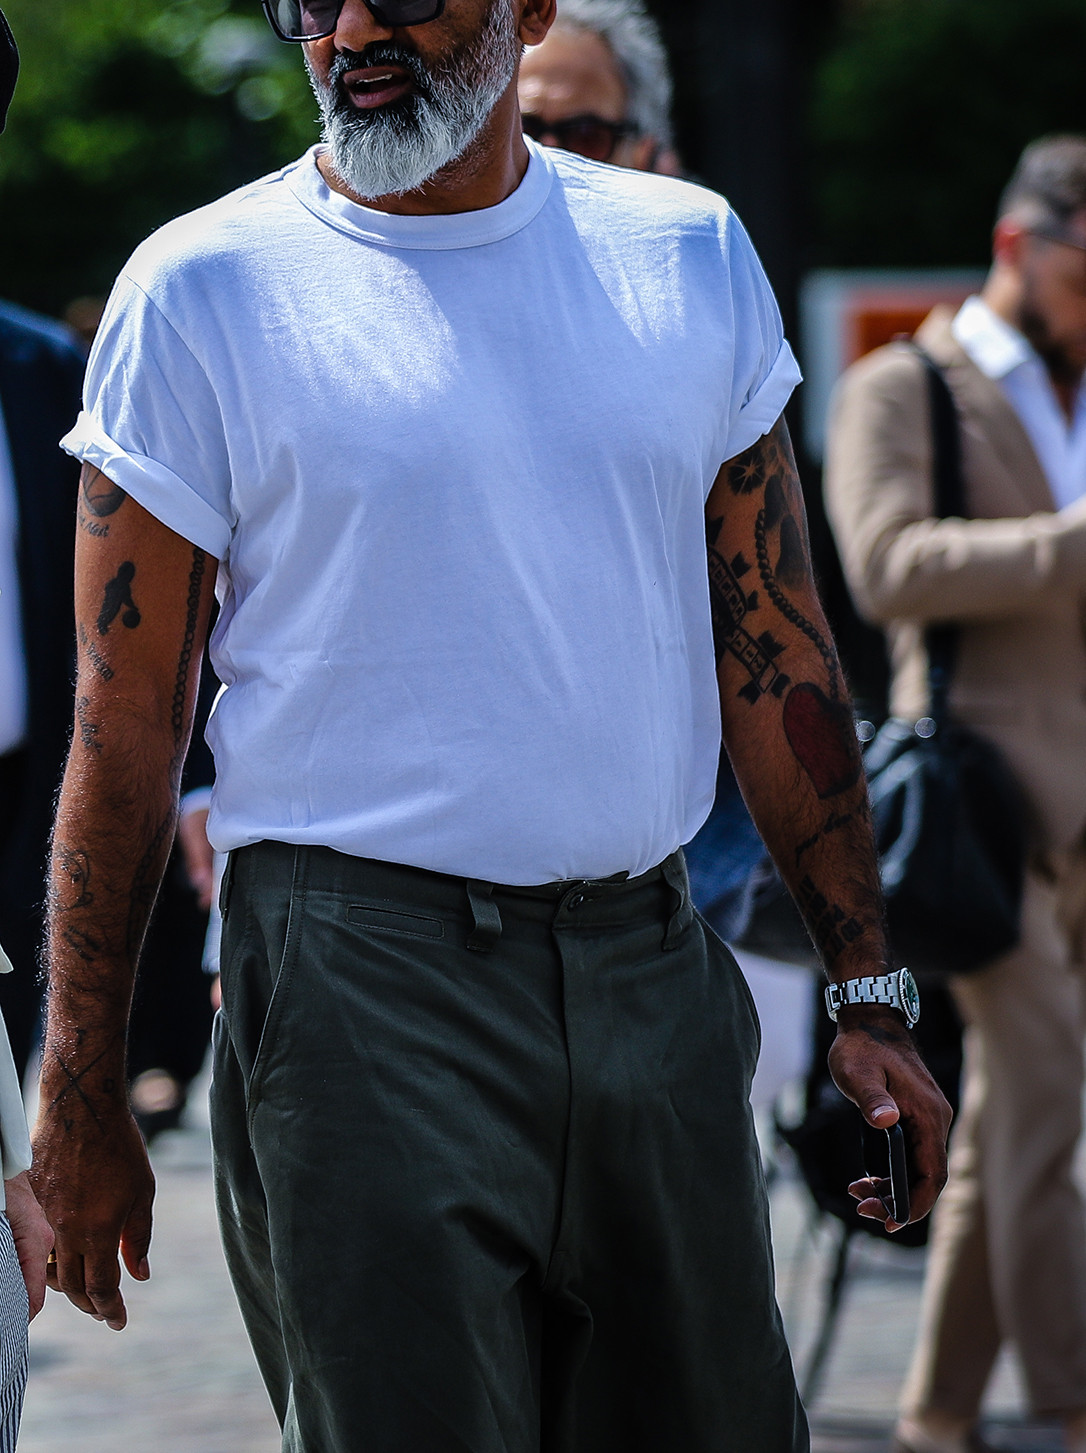 Men's outfit idea for 2021 with white crew neck t-shirt, green chinos, black sandals. Suitable for summer.